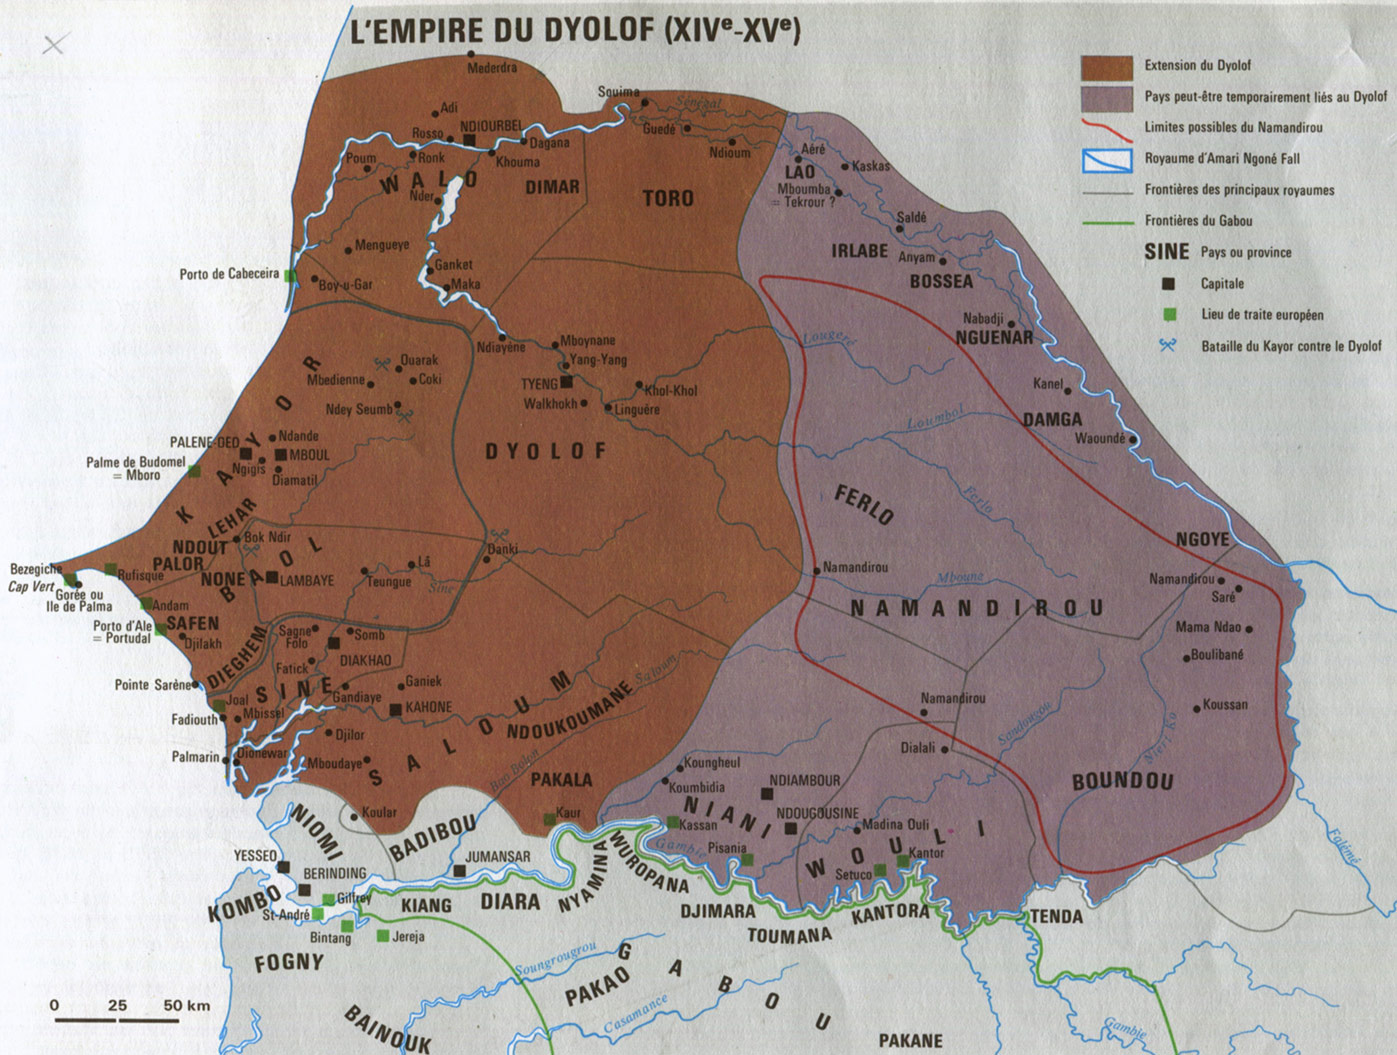 Fig. 7. Carte du Grand Jolof tiré de l'atlas national du Sénégal.